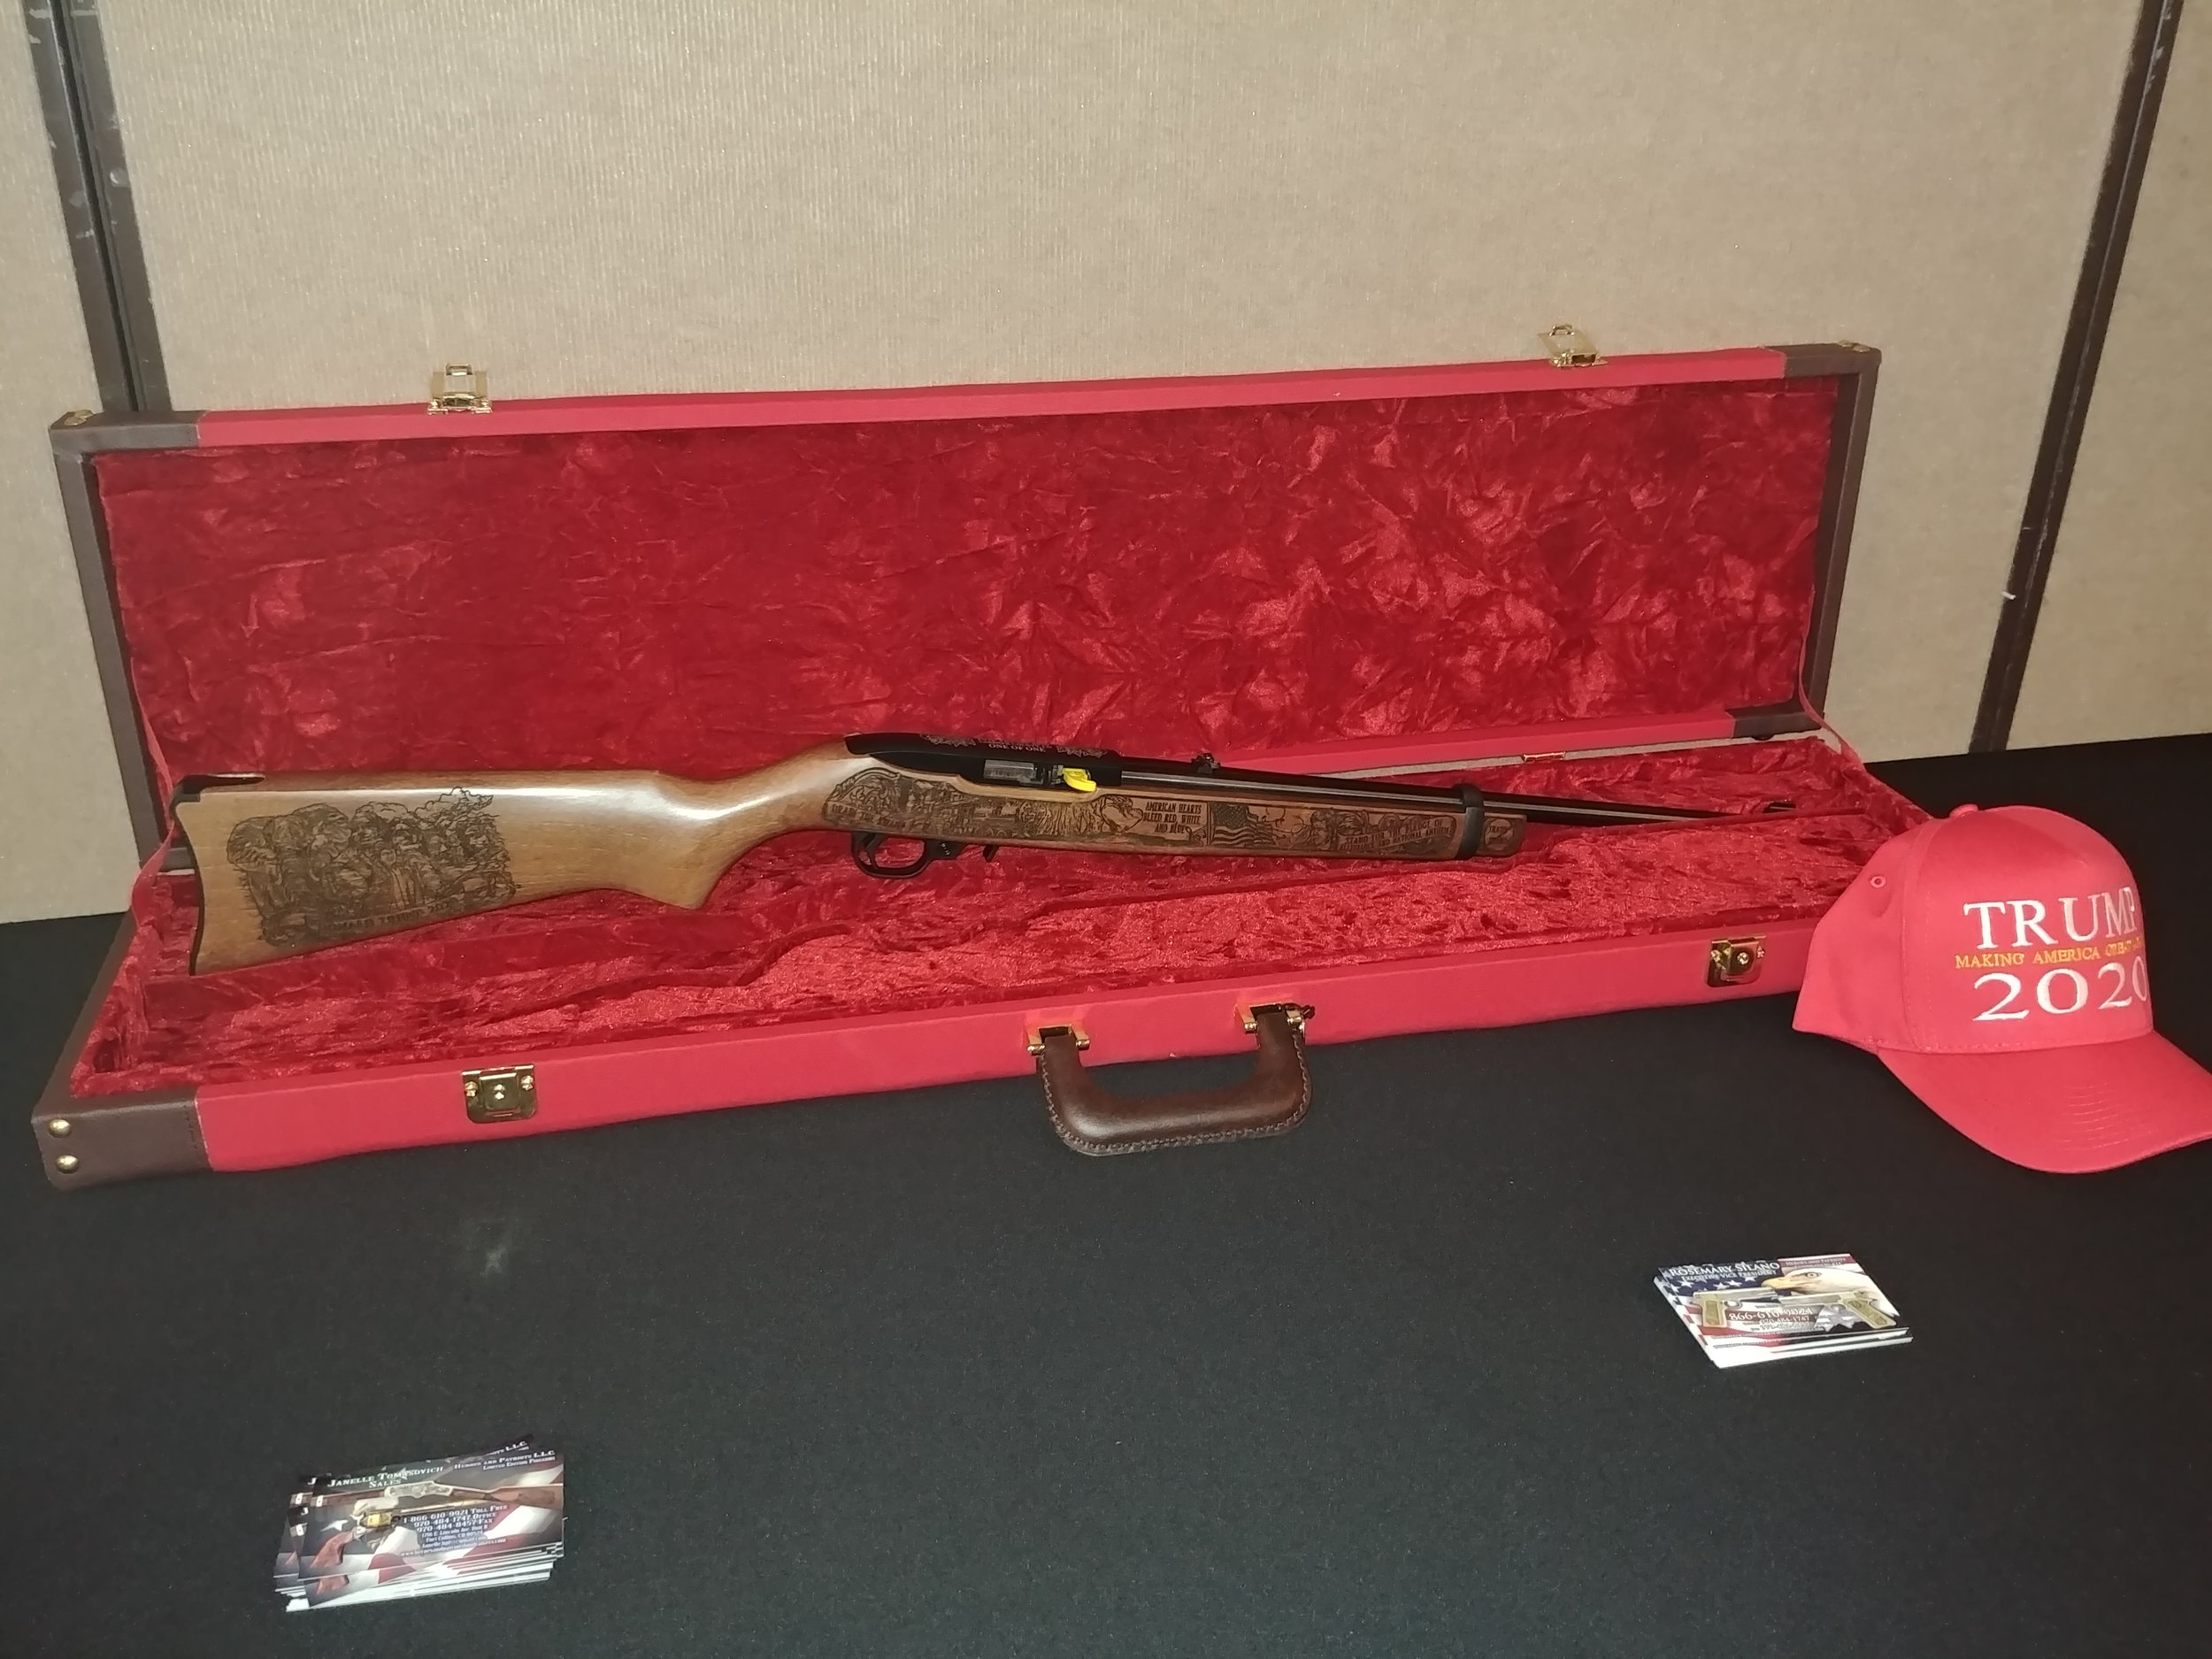 The GOP Trump 2020 Rifle - One of One for Larimer County, CO on display before the live auction.